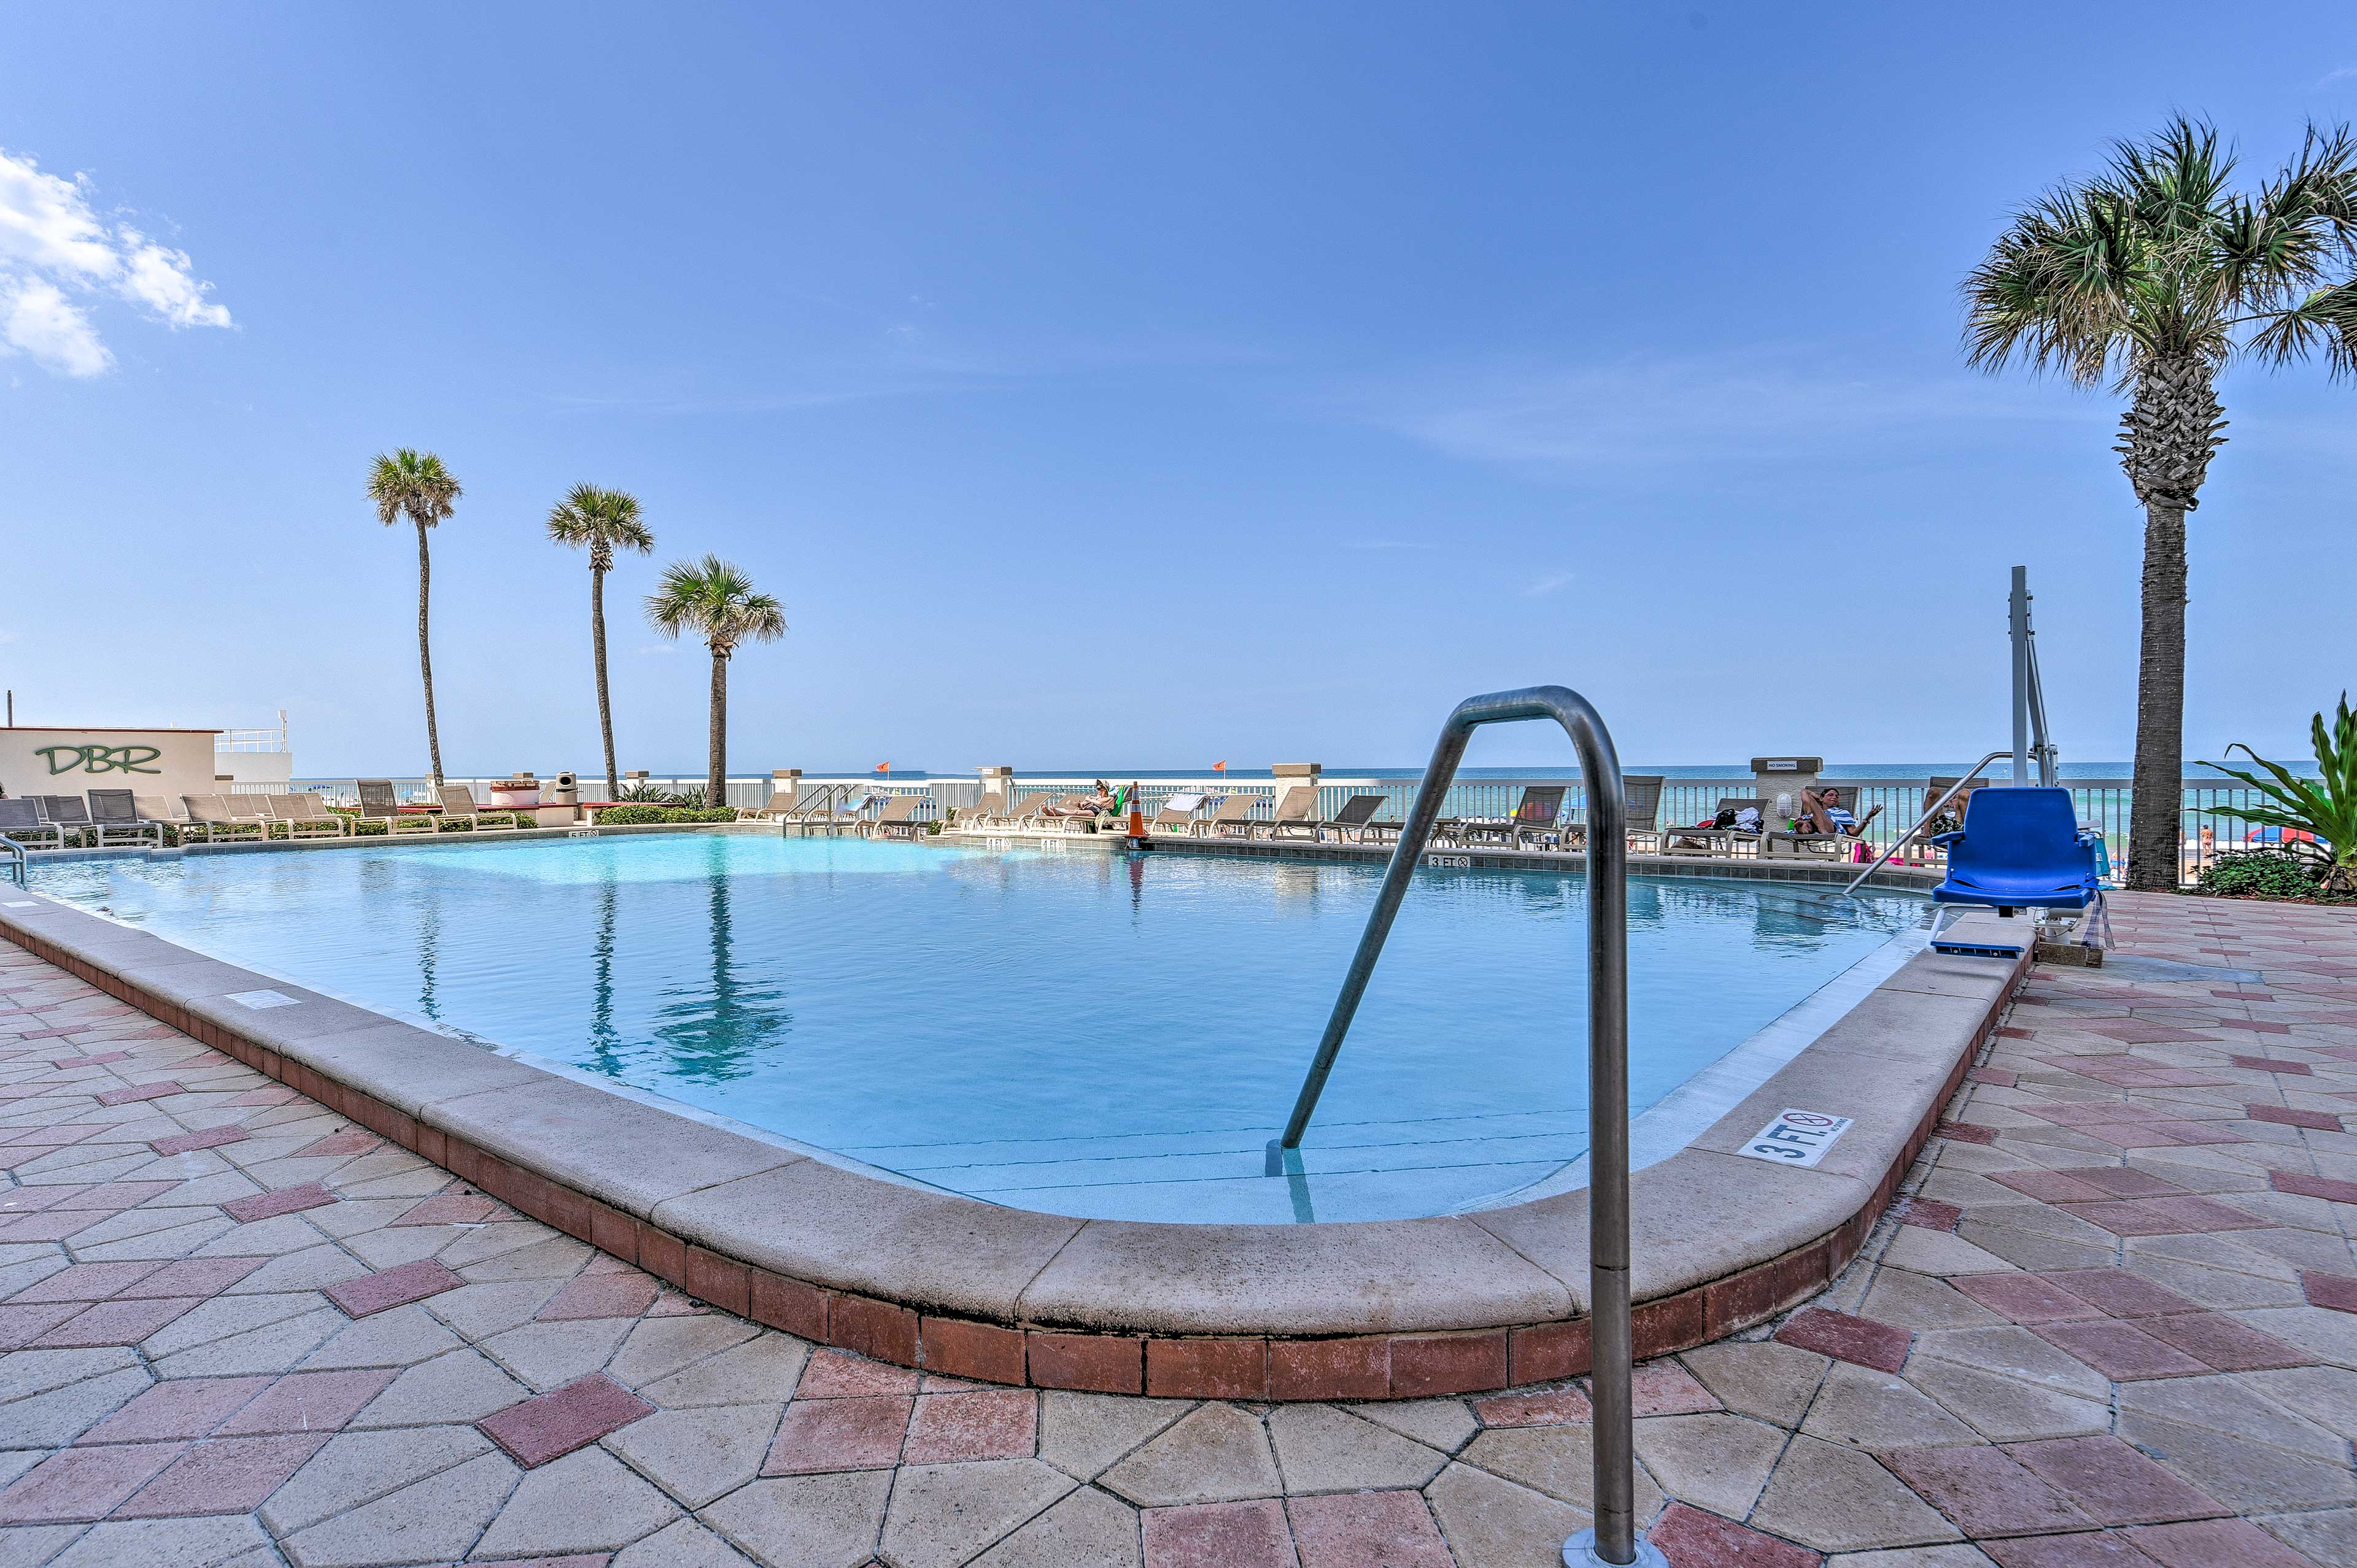 Go for a refreshing dip in the oceanfront pool.